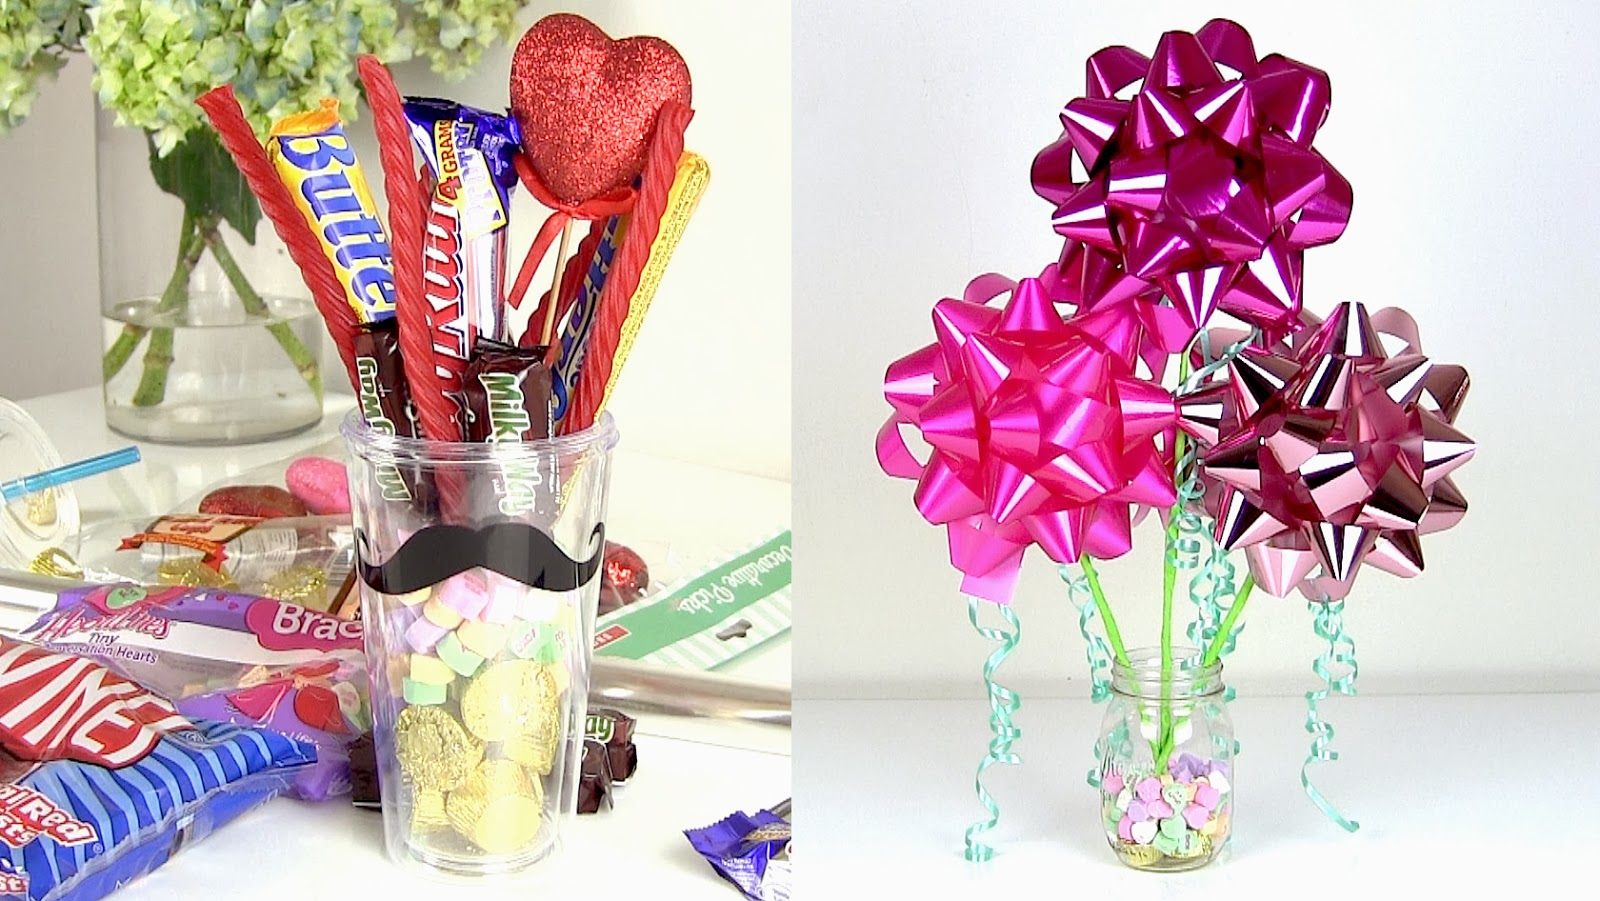 Urbanog blog last minute diy valentines candy bouquets for him last minute diy valentines candy bouquets for him and her izmirmasajfo Choice Image